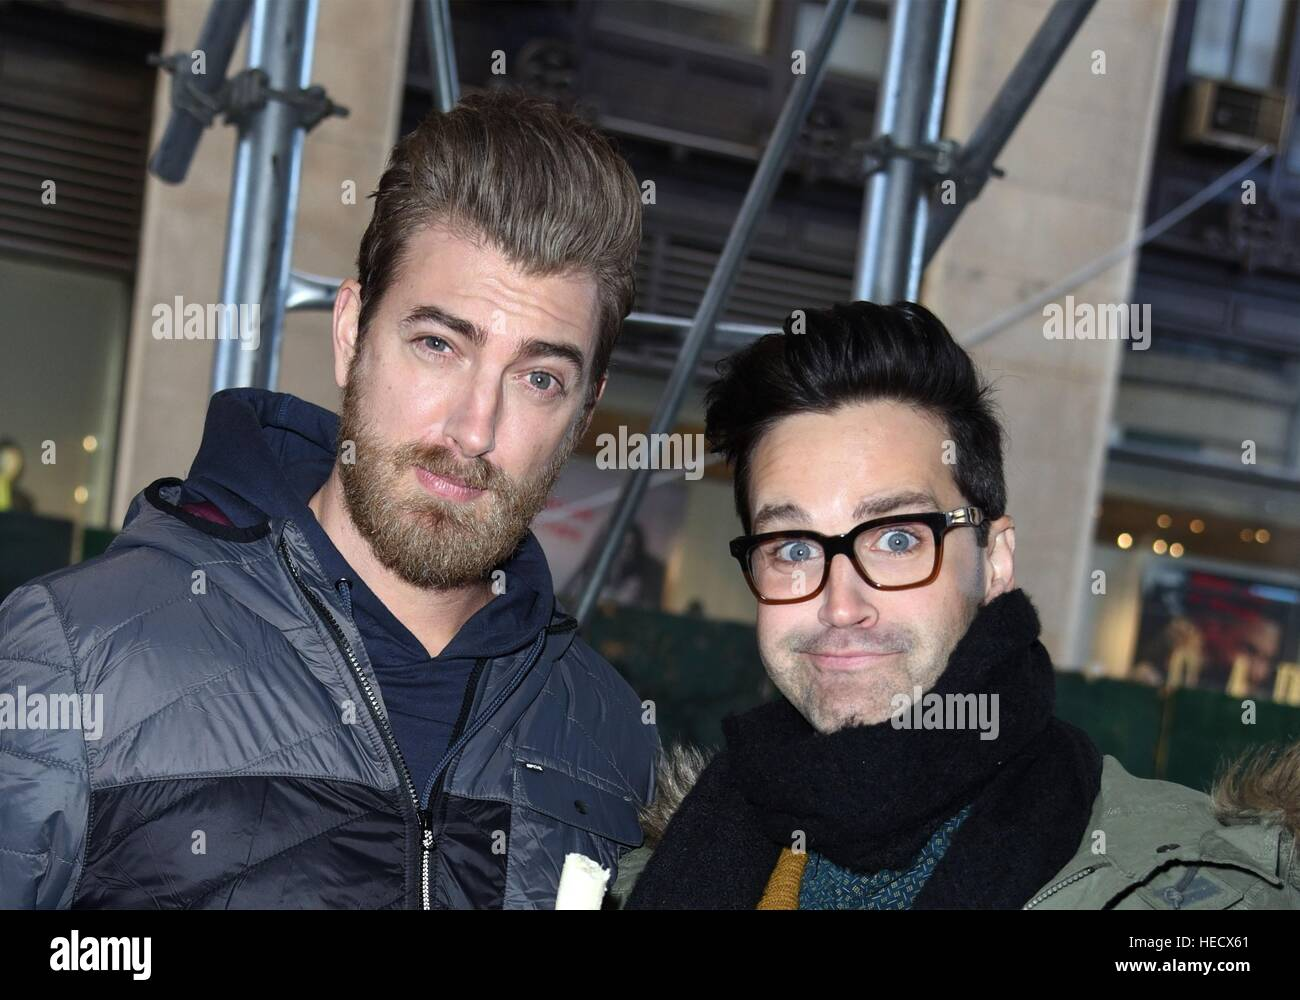 Rhett and link dating advice